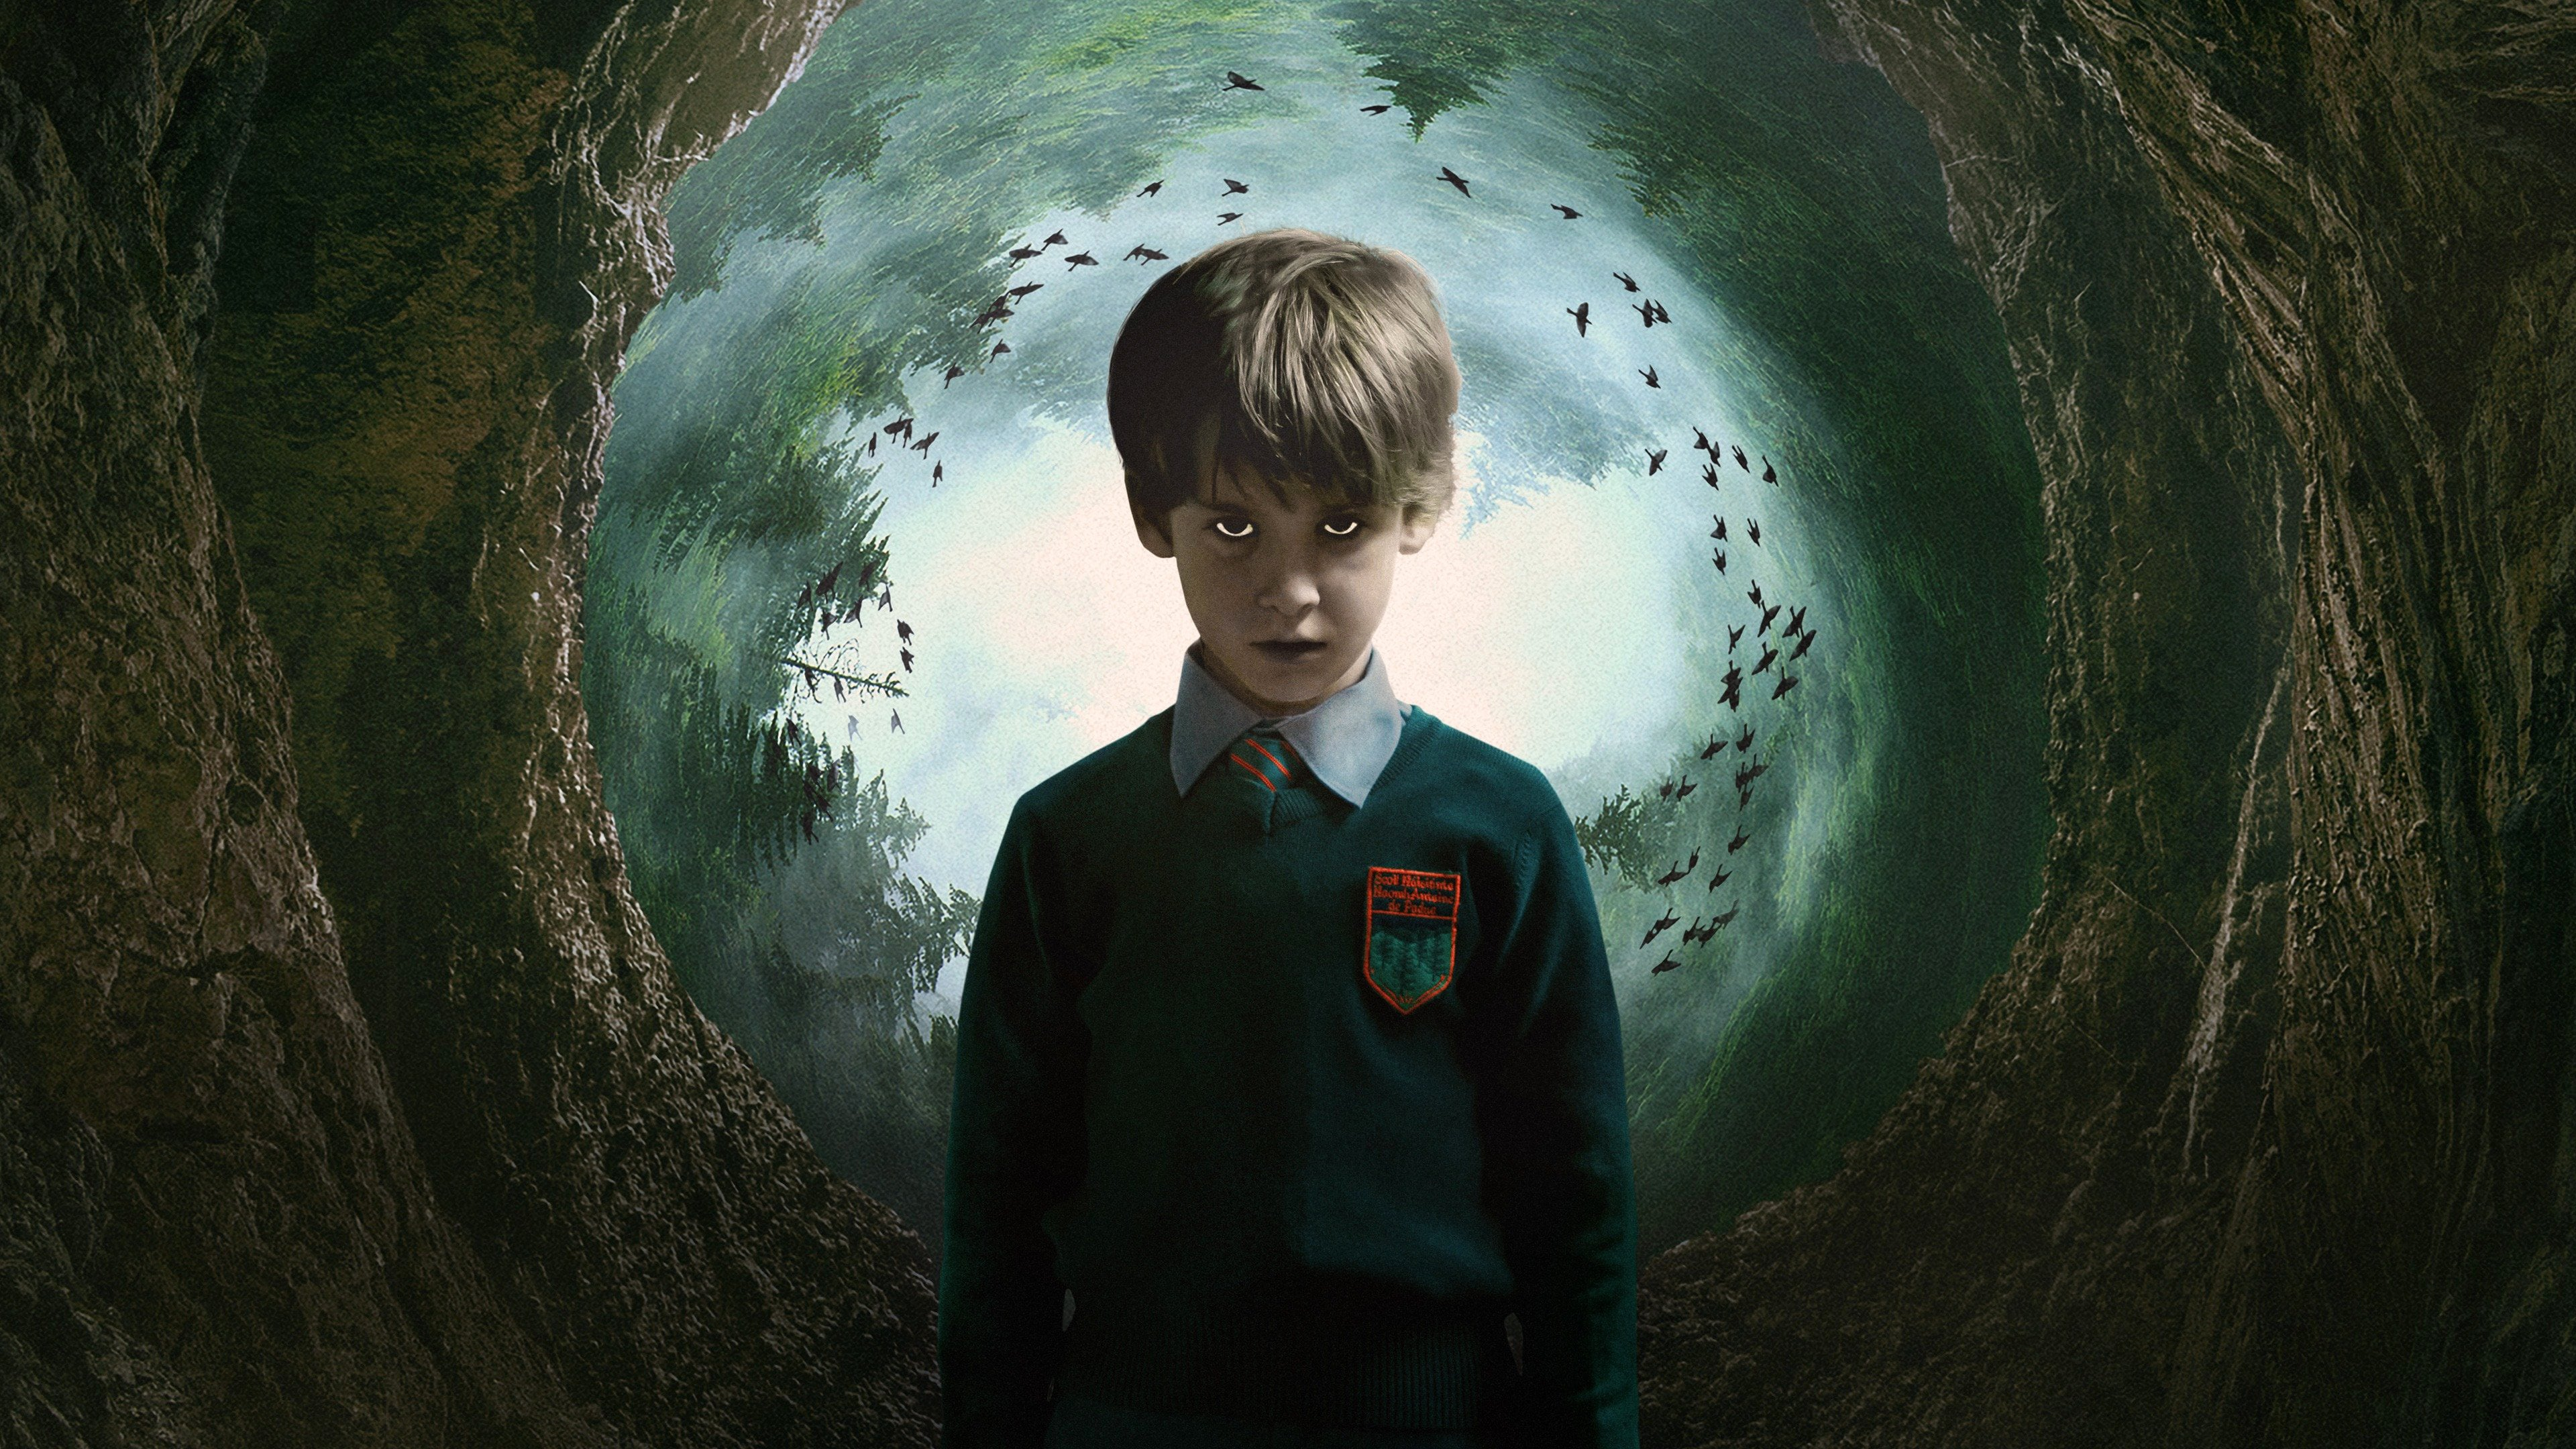 Regarder The Hole in the Ground en streaming gratuit